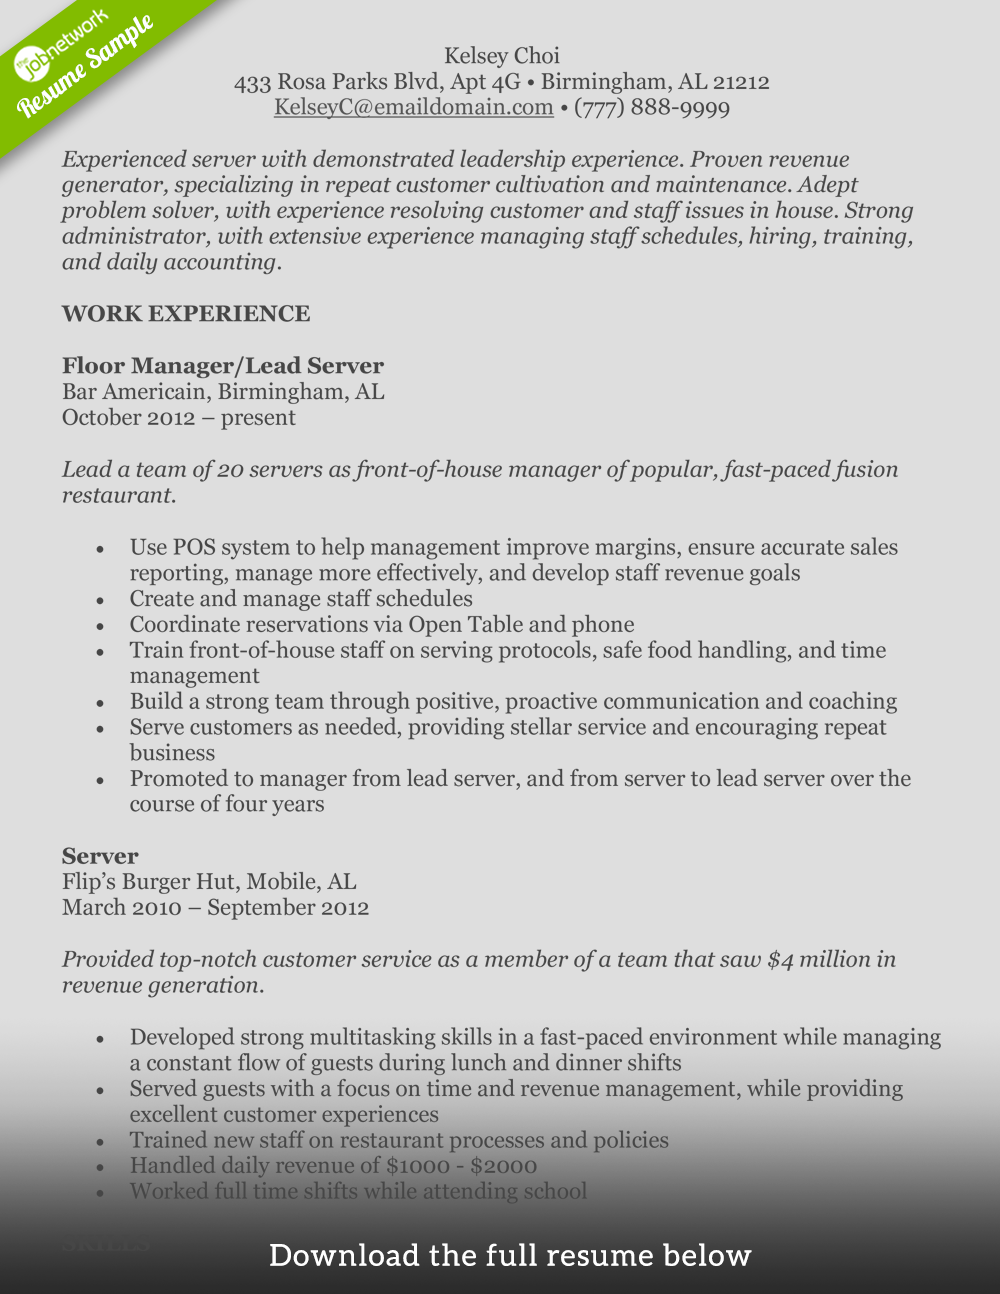 How to write a perfect food service resume examples included food service resume experienced altavistaventures Images